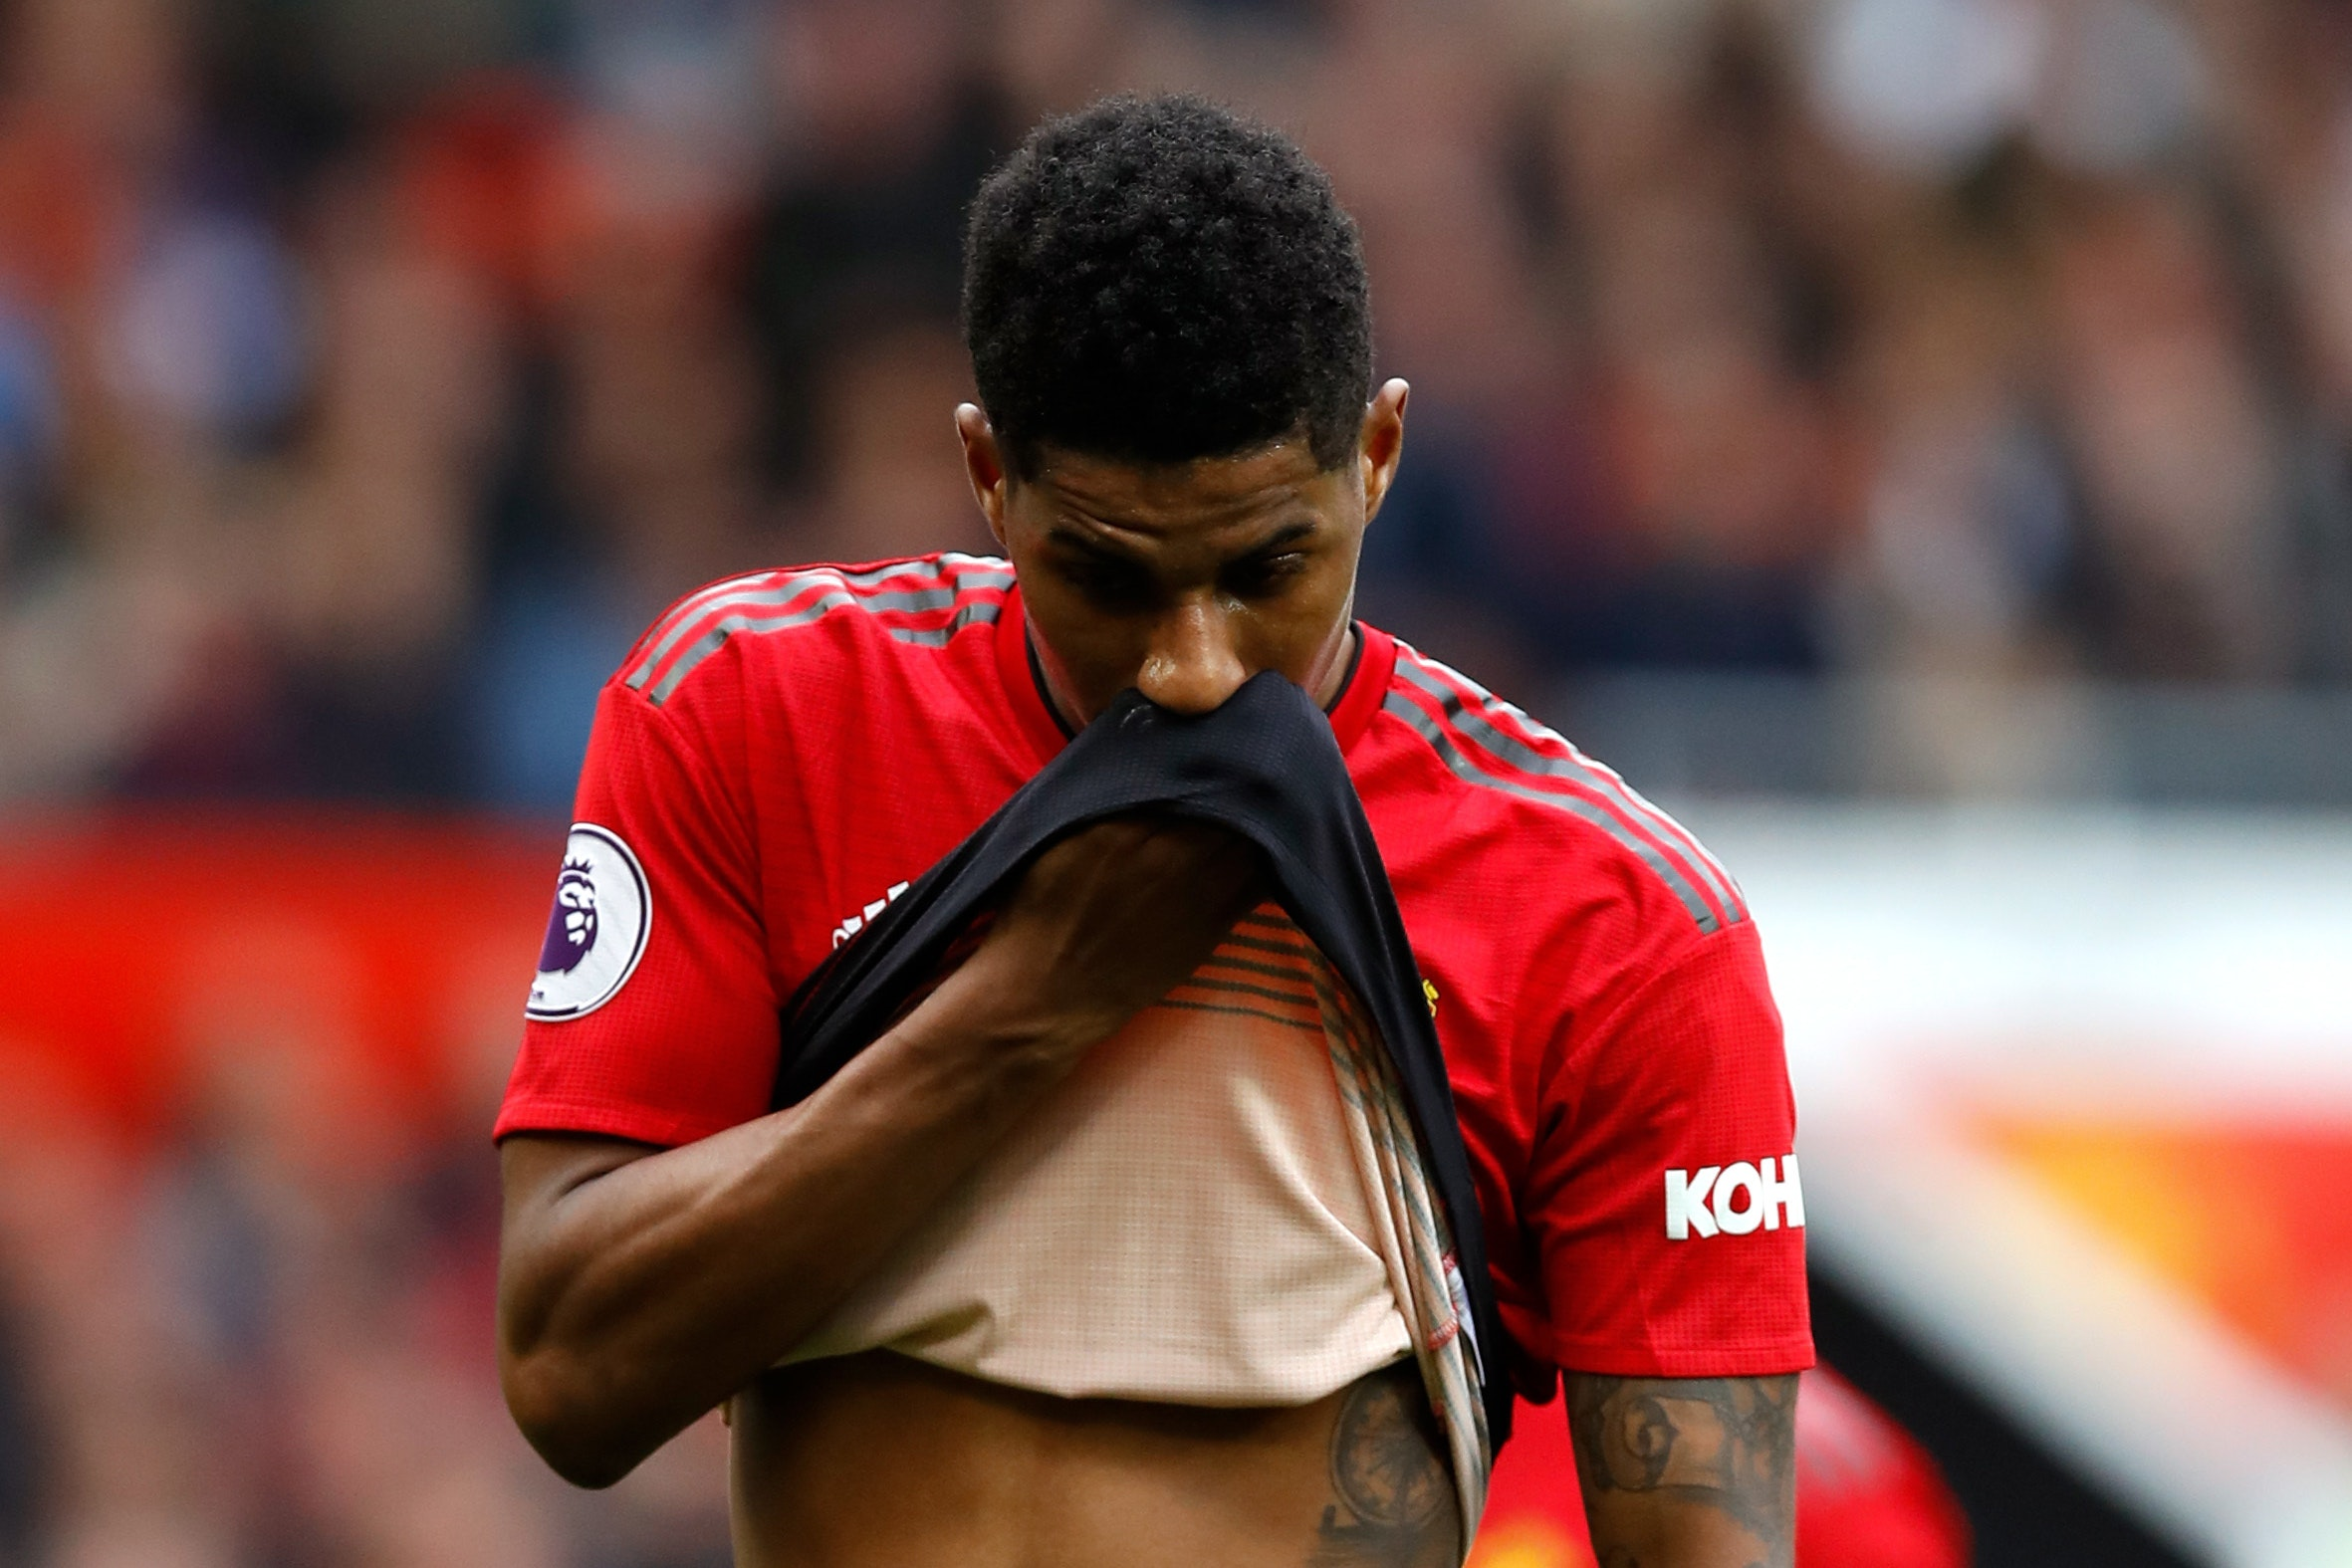 Marcus Rashford made no attempt to disguise United's poor season (Martin Rickett/PA)